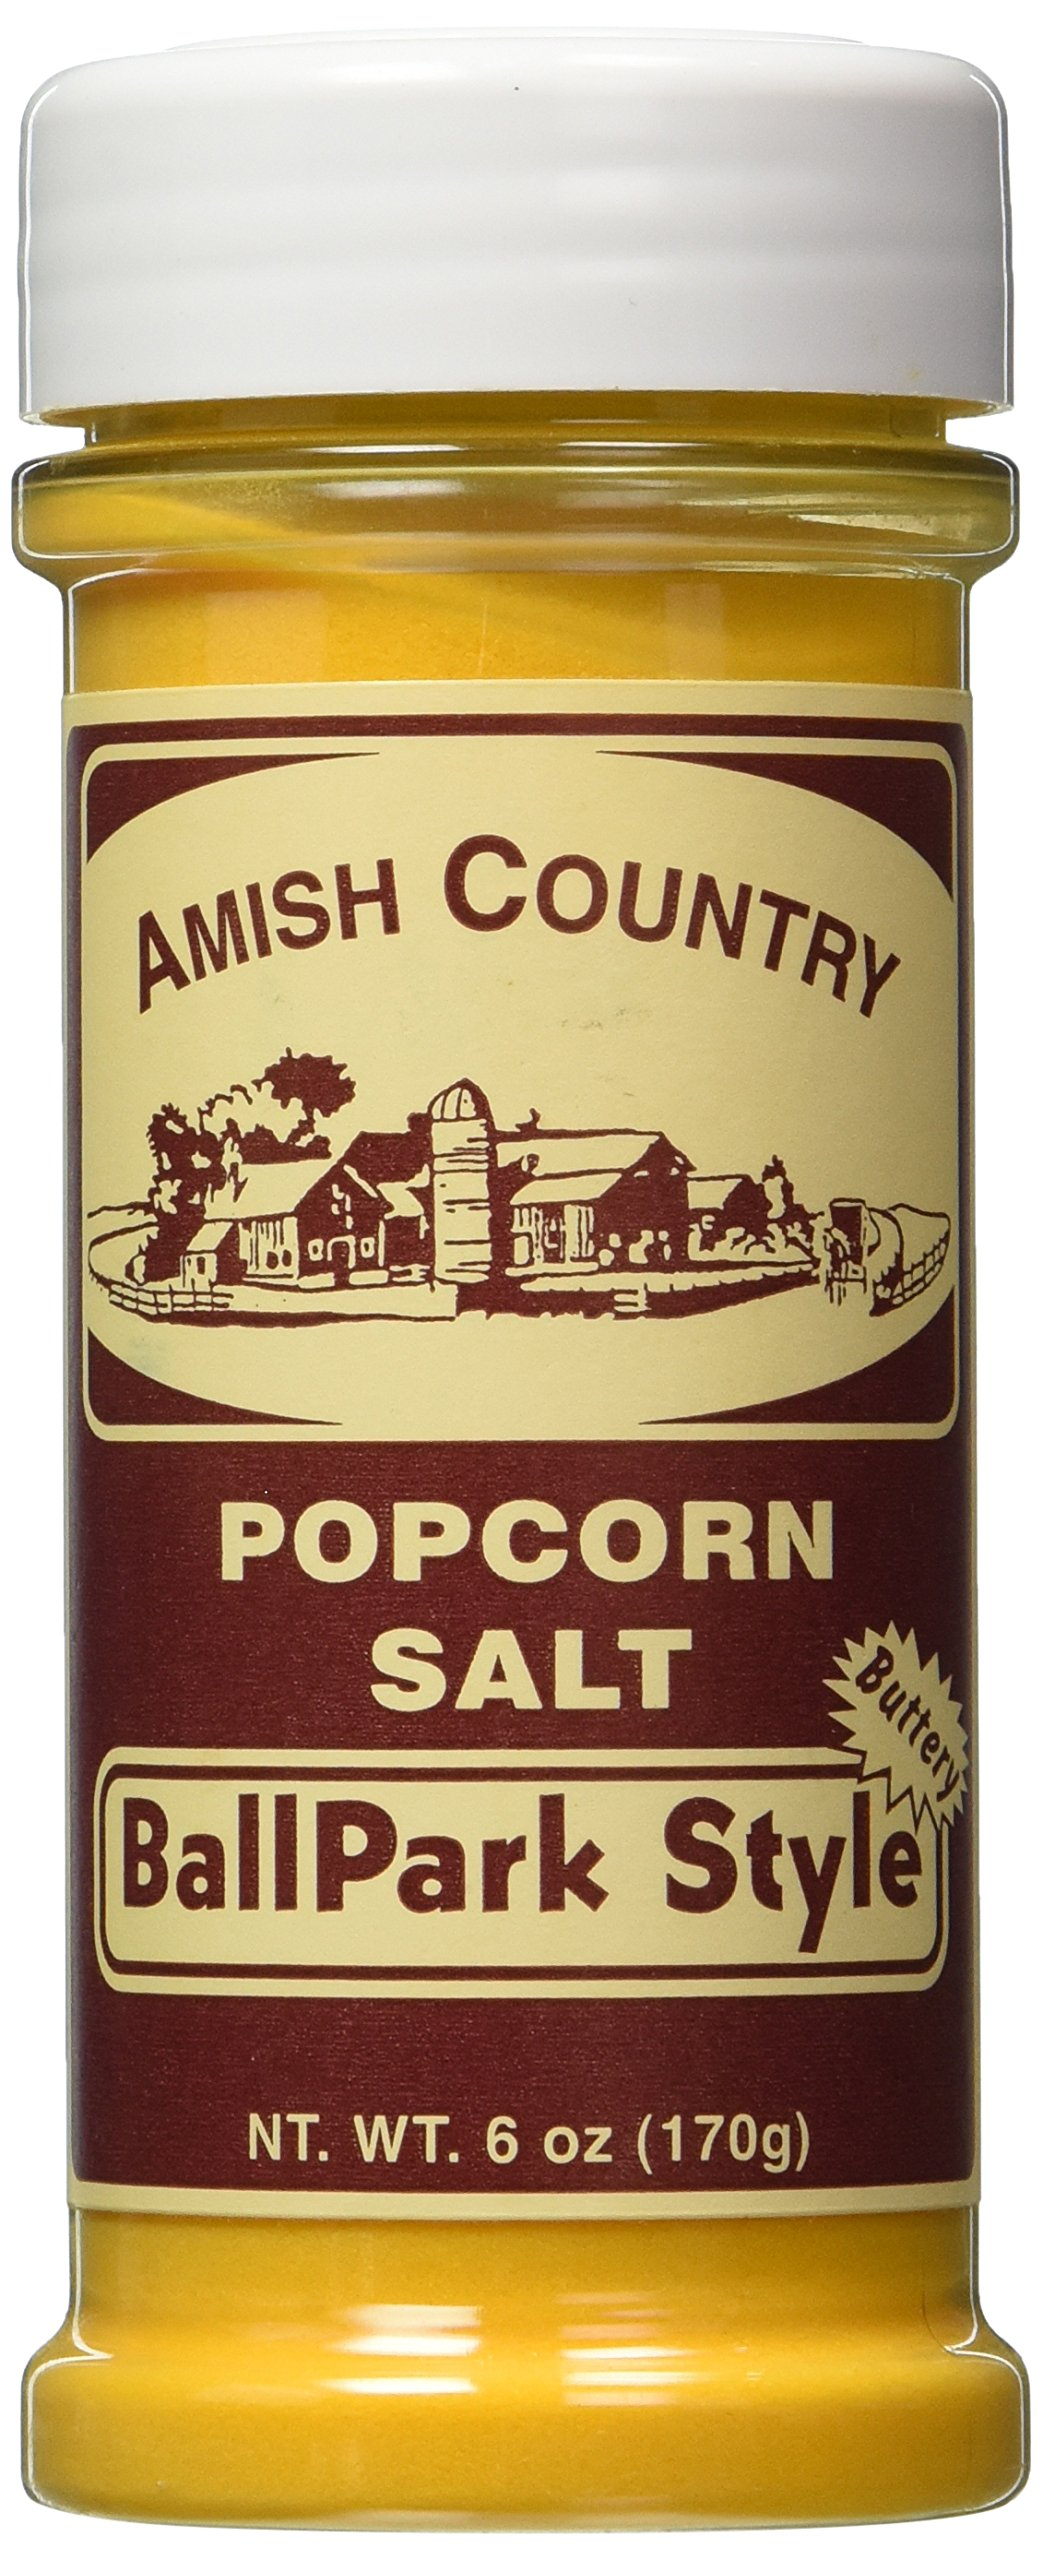 Amish Country Popcorn - Old Fashioned Ball Park Butter Salt 6 oz - with Recipe Guide